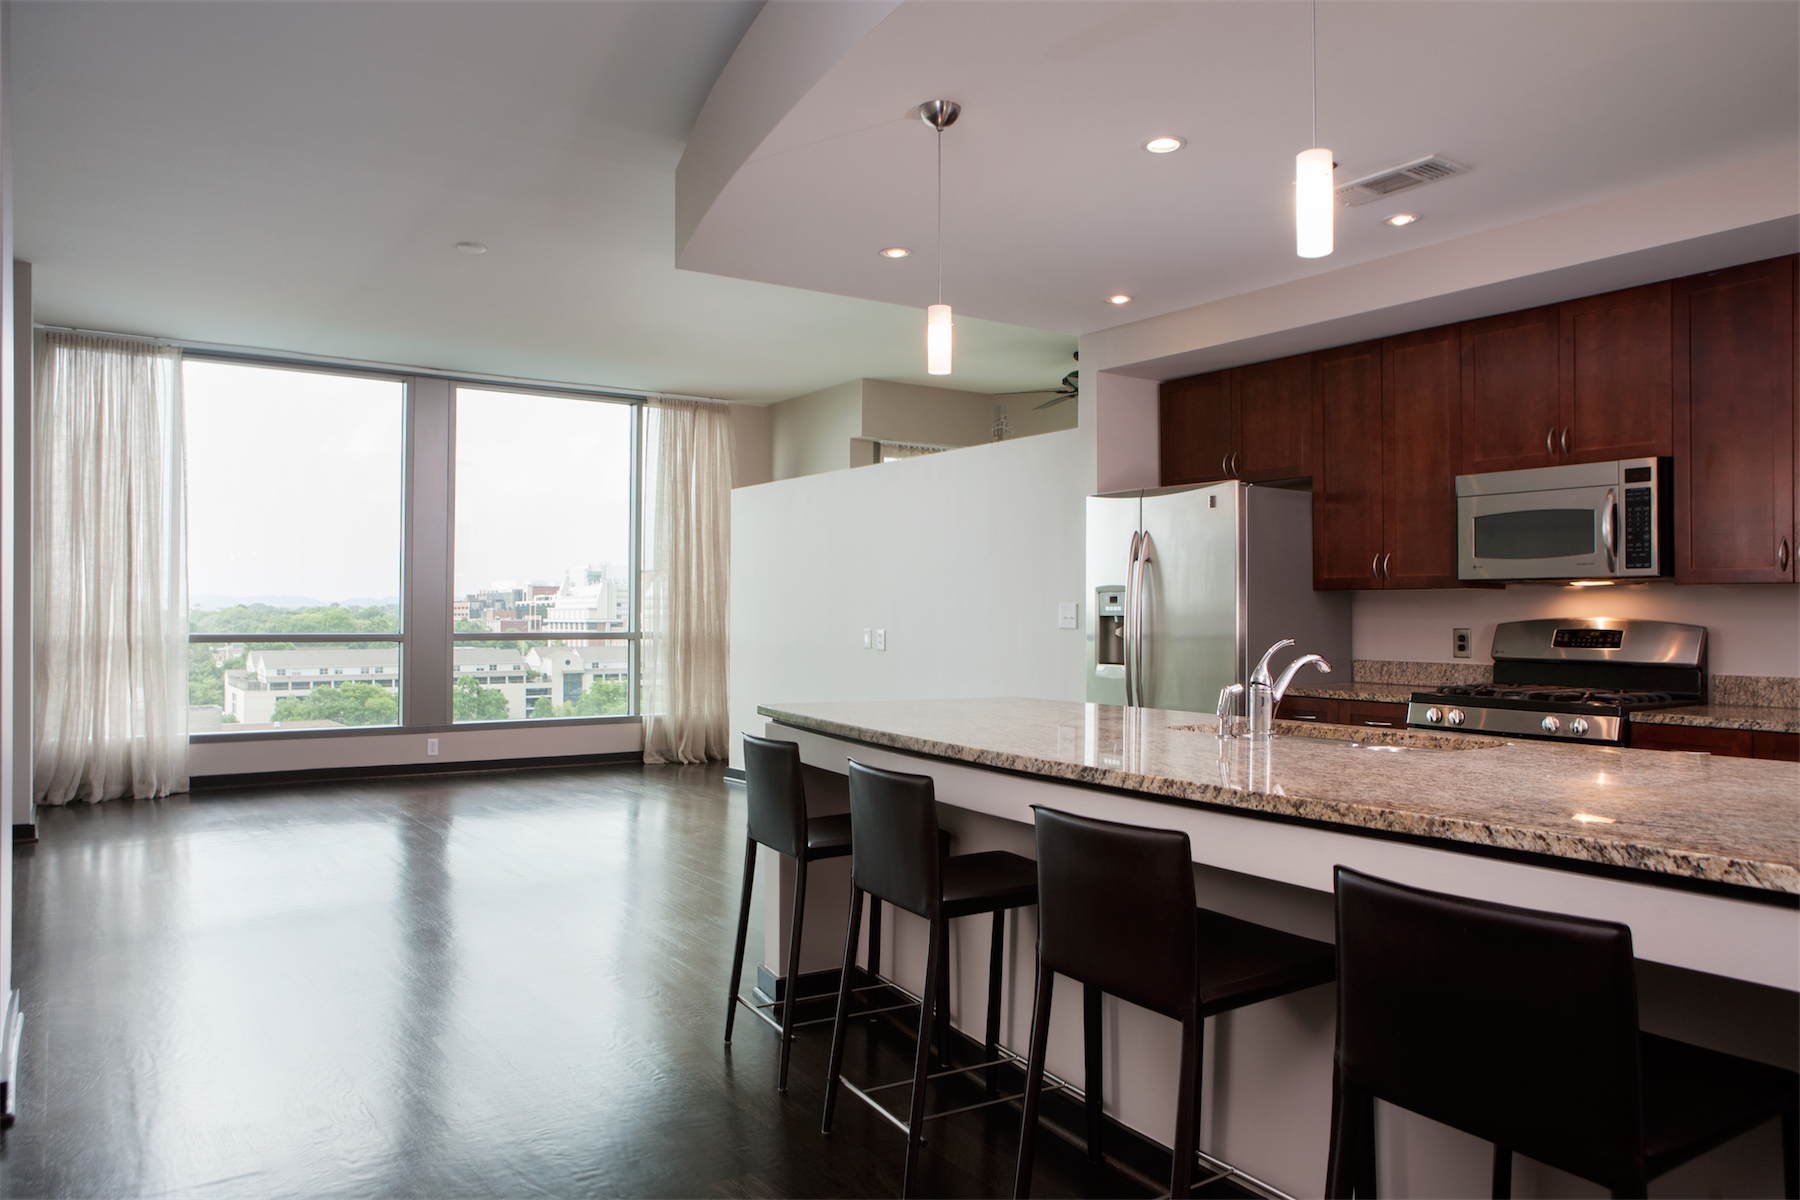 Condominium for Rent at Luxurious Urban Living 900 20th Avenue South #1106 Nashville, Tennessee 37212 United States